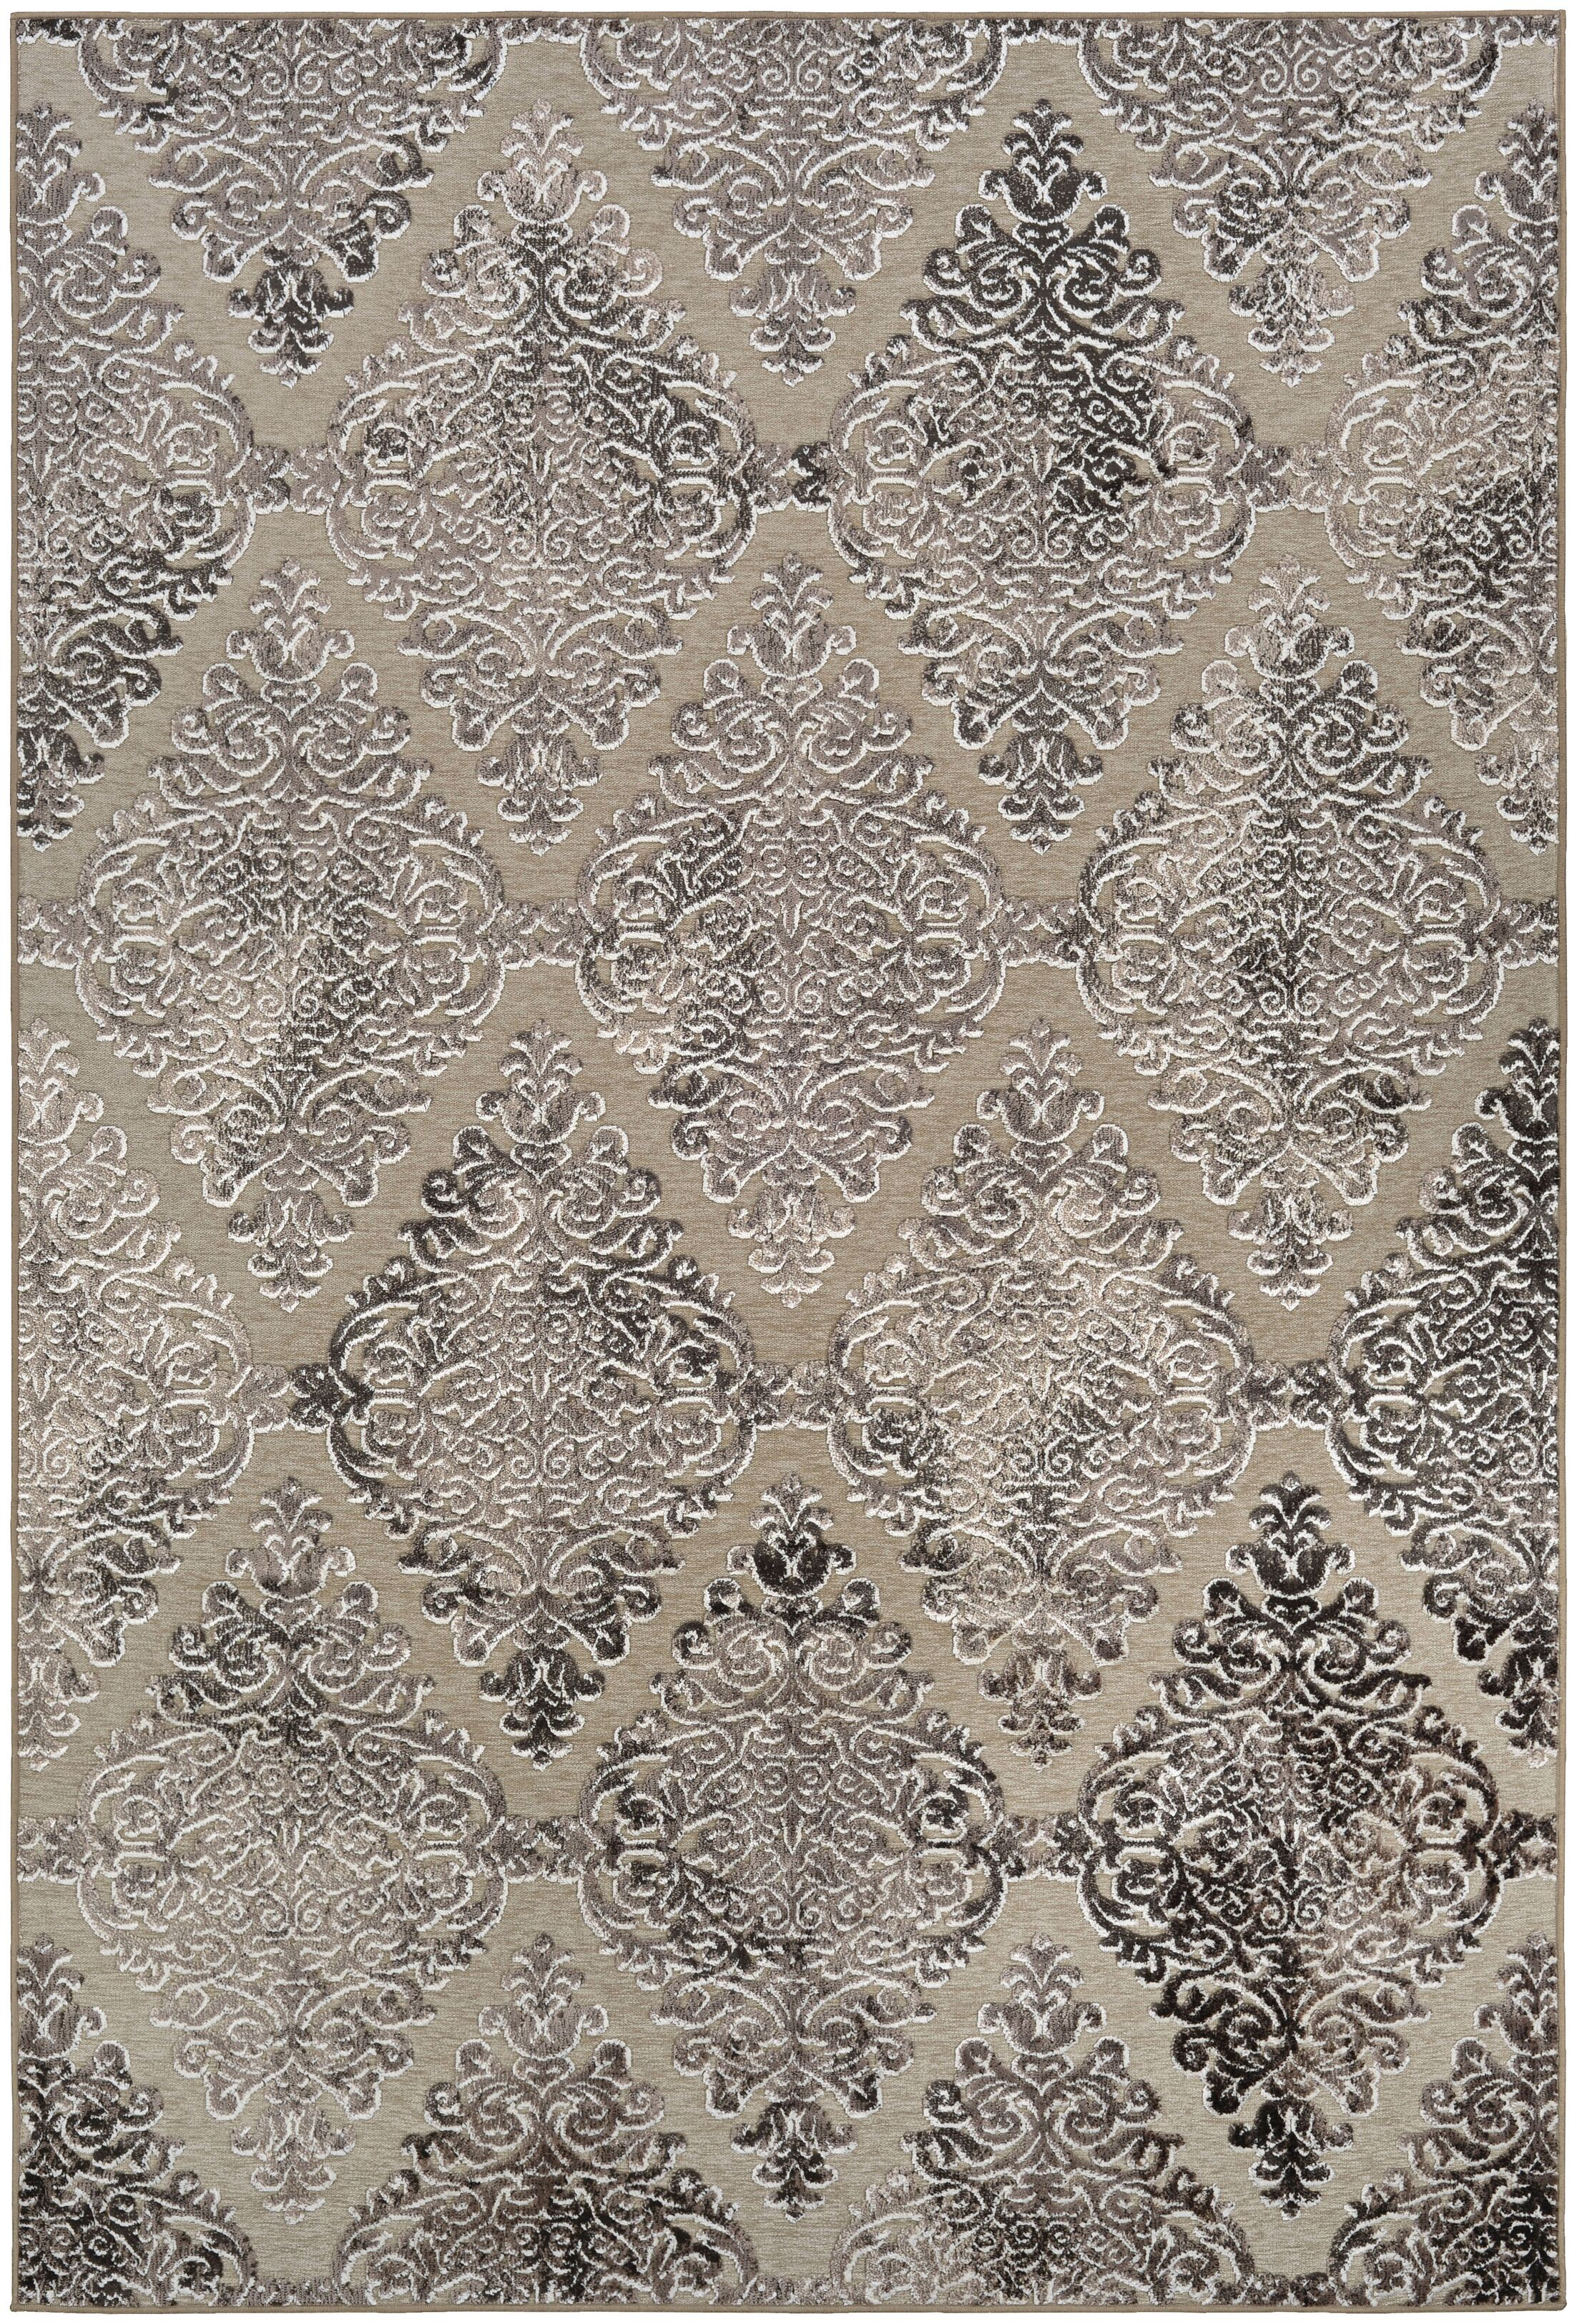 McNamara Woven Beige Area Rug Rug Size: Rectangle 5'3